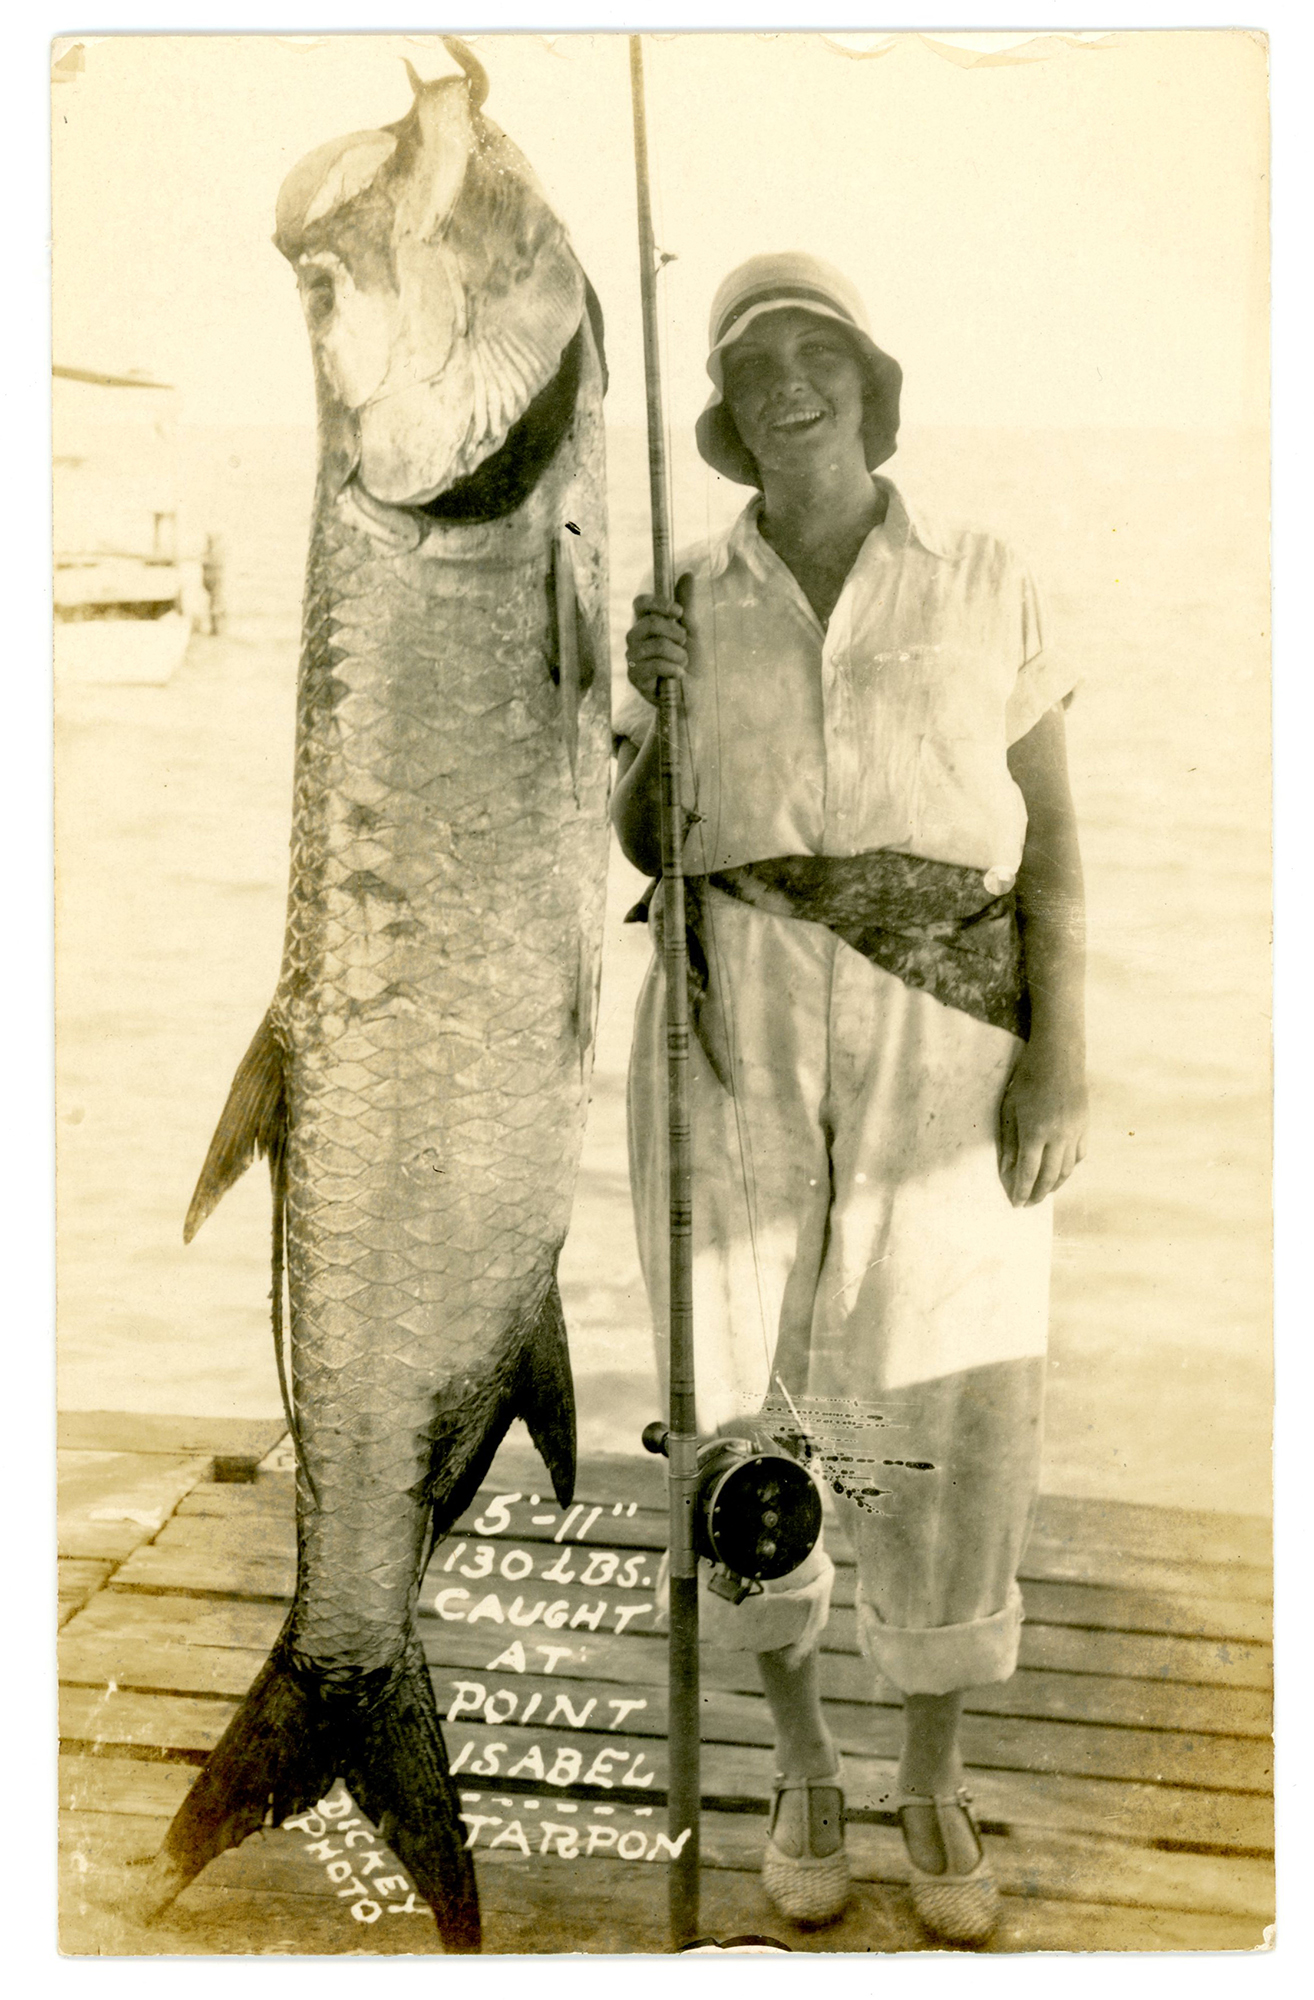 Woman with enormous catch, Point Isabel, Texas, 1925